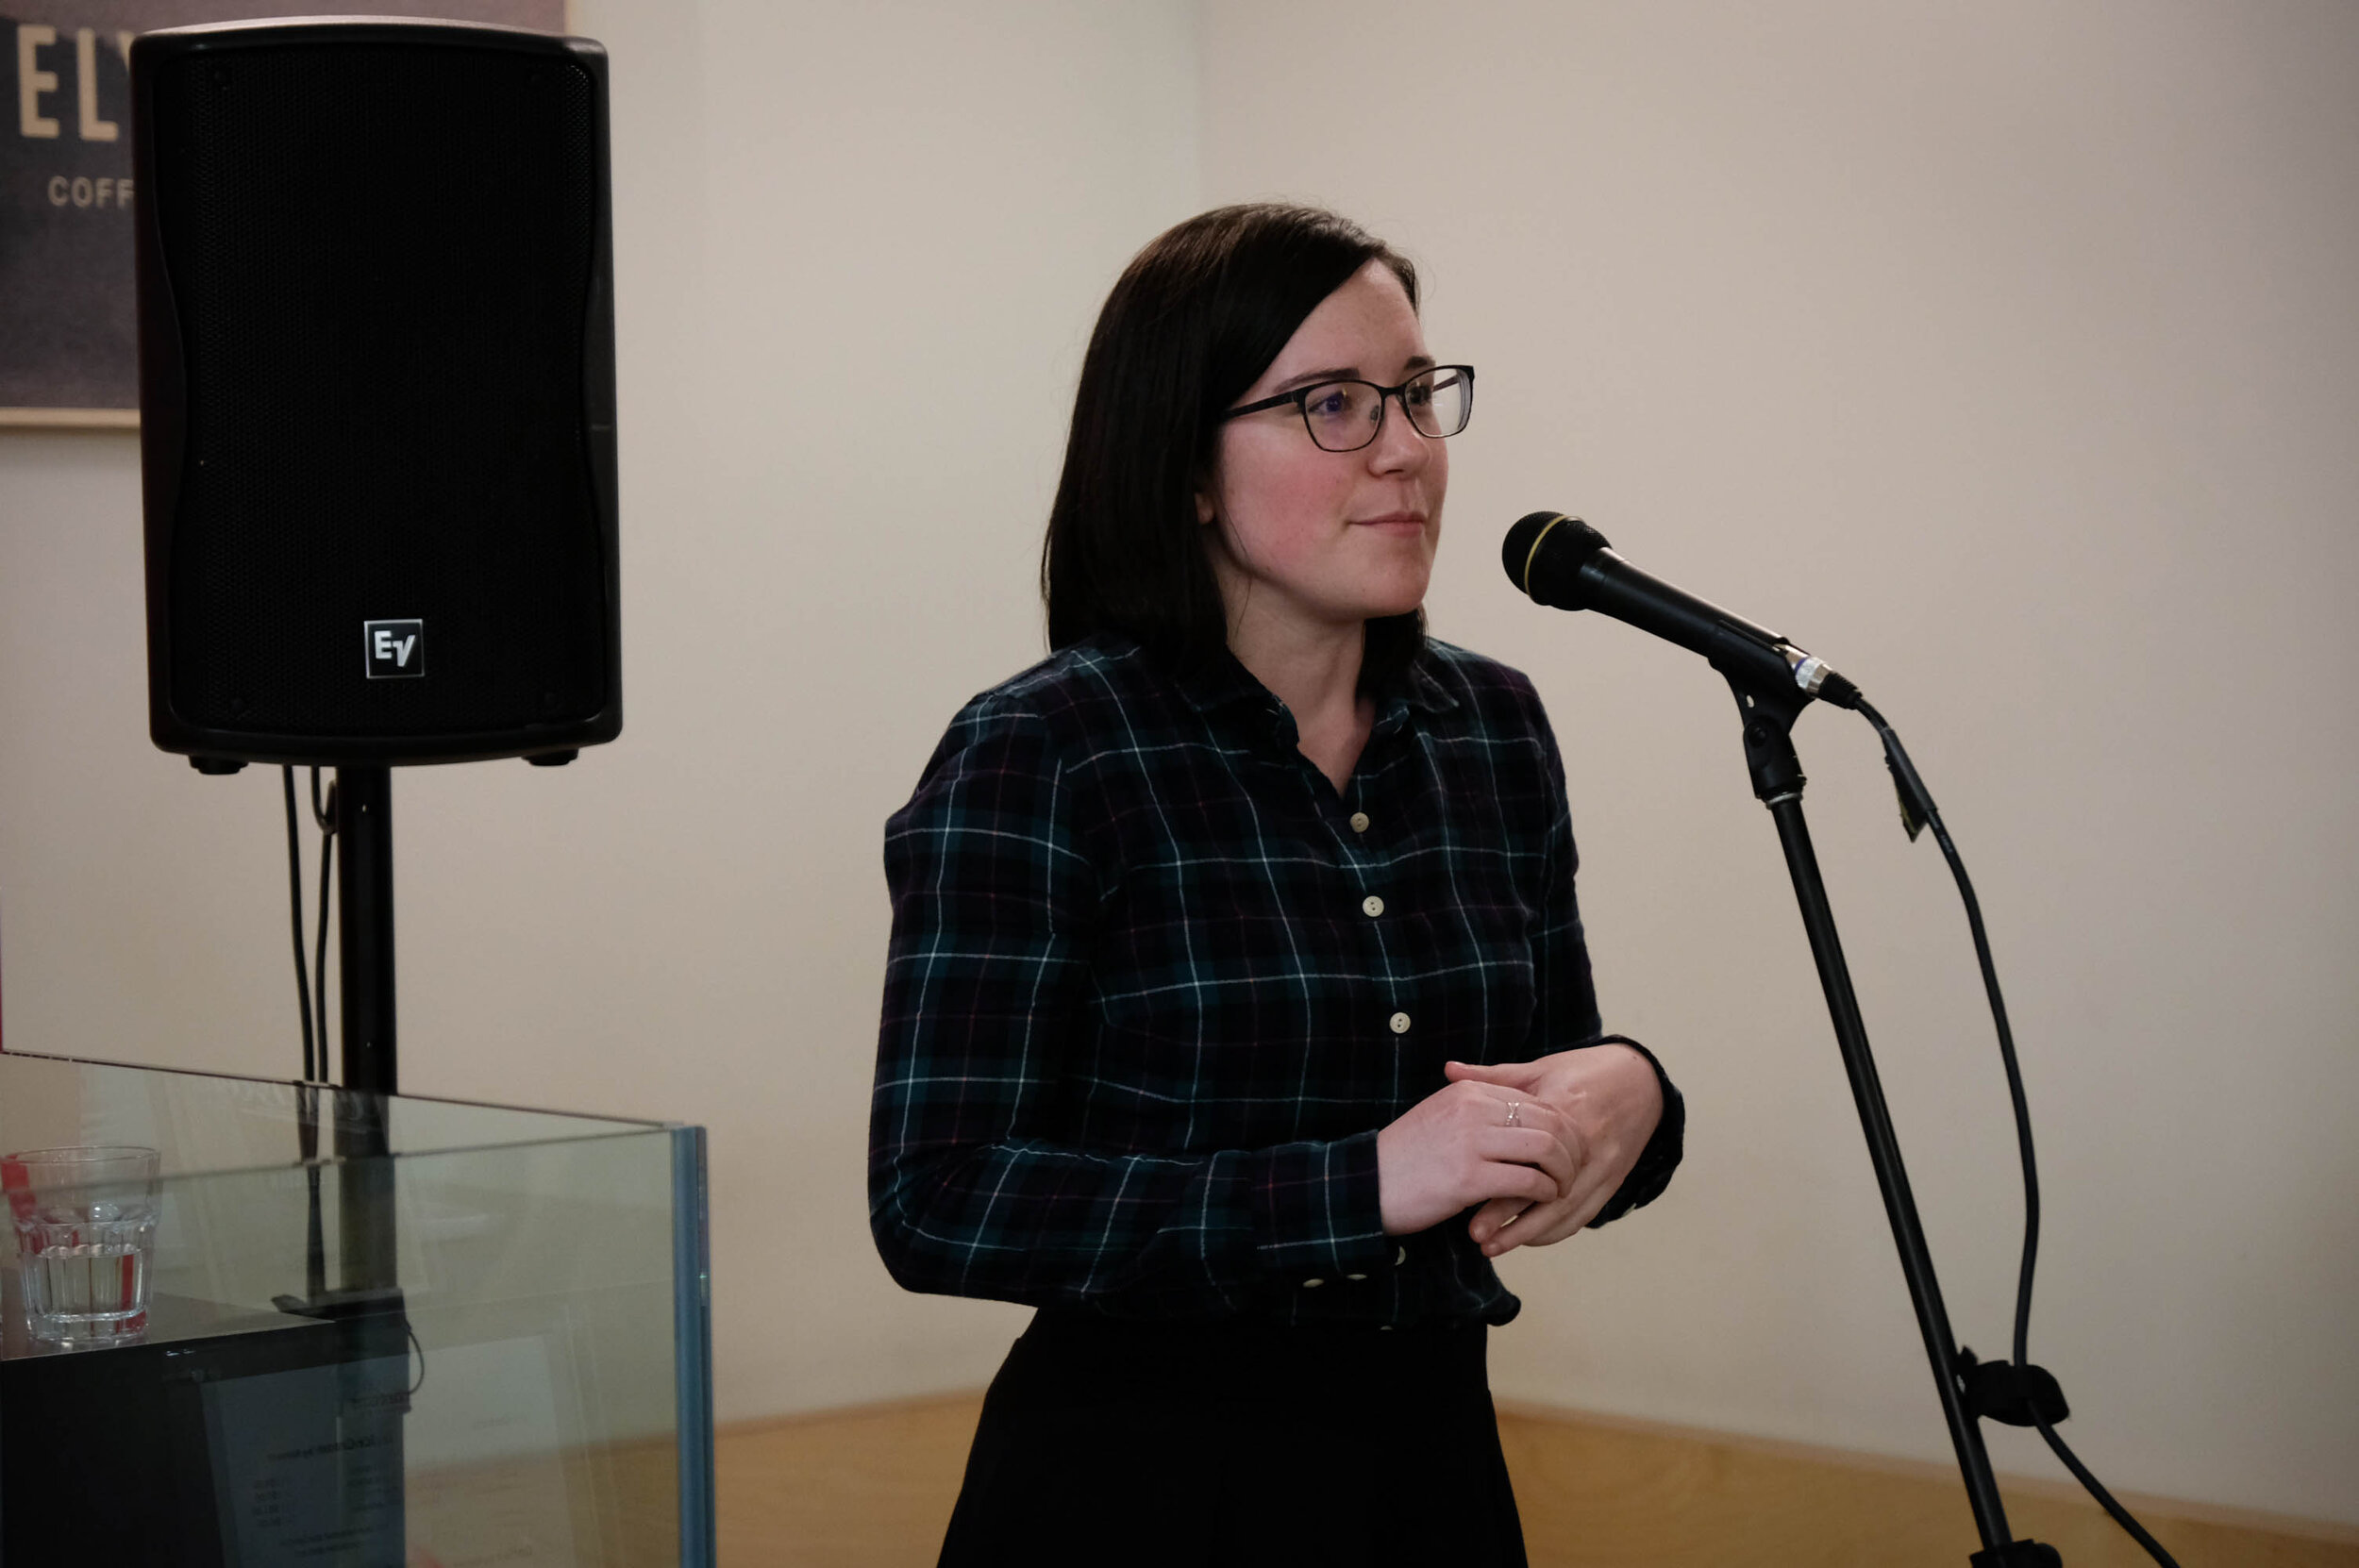 Storyteller and poet Megan on: the expectations of femininity and the harms therein